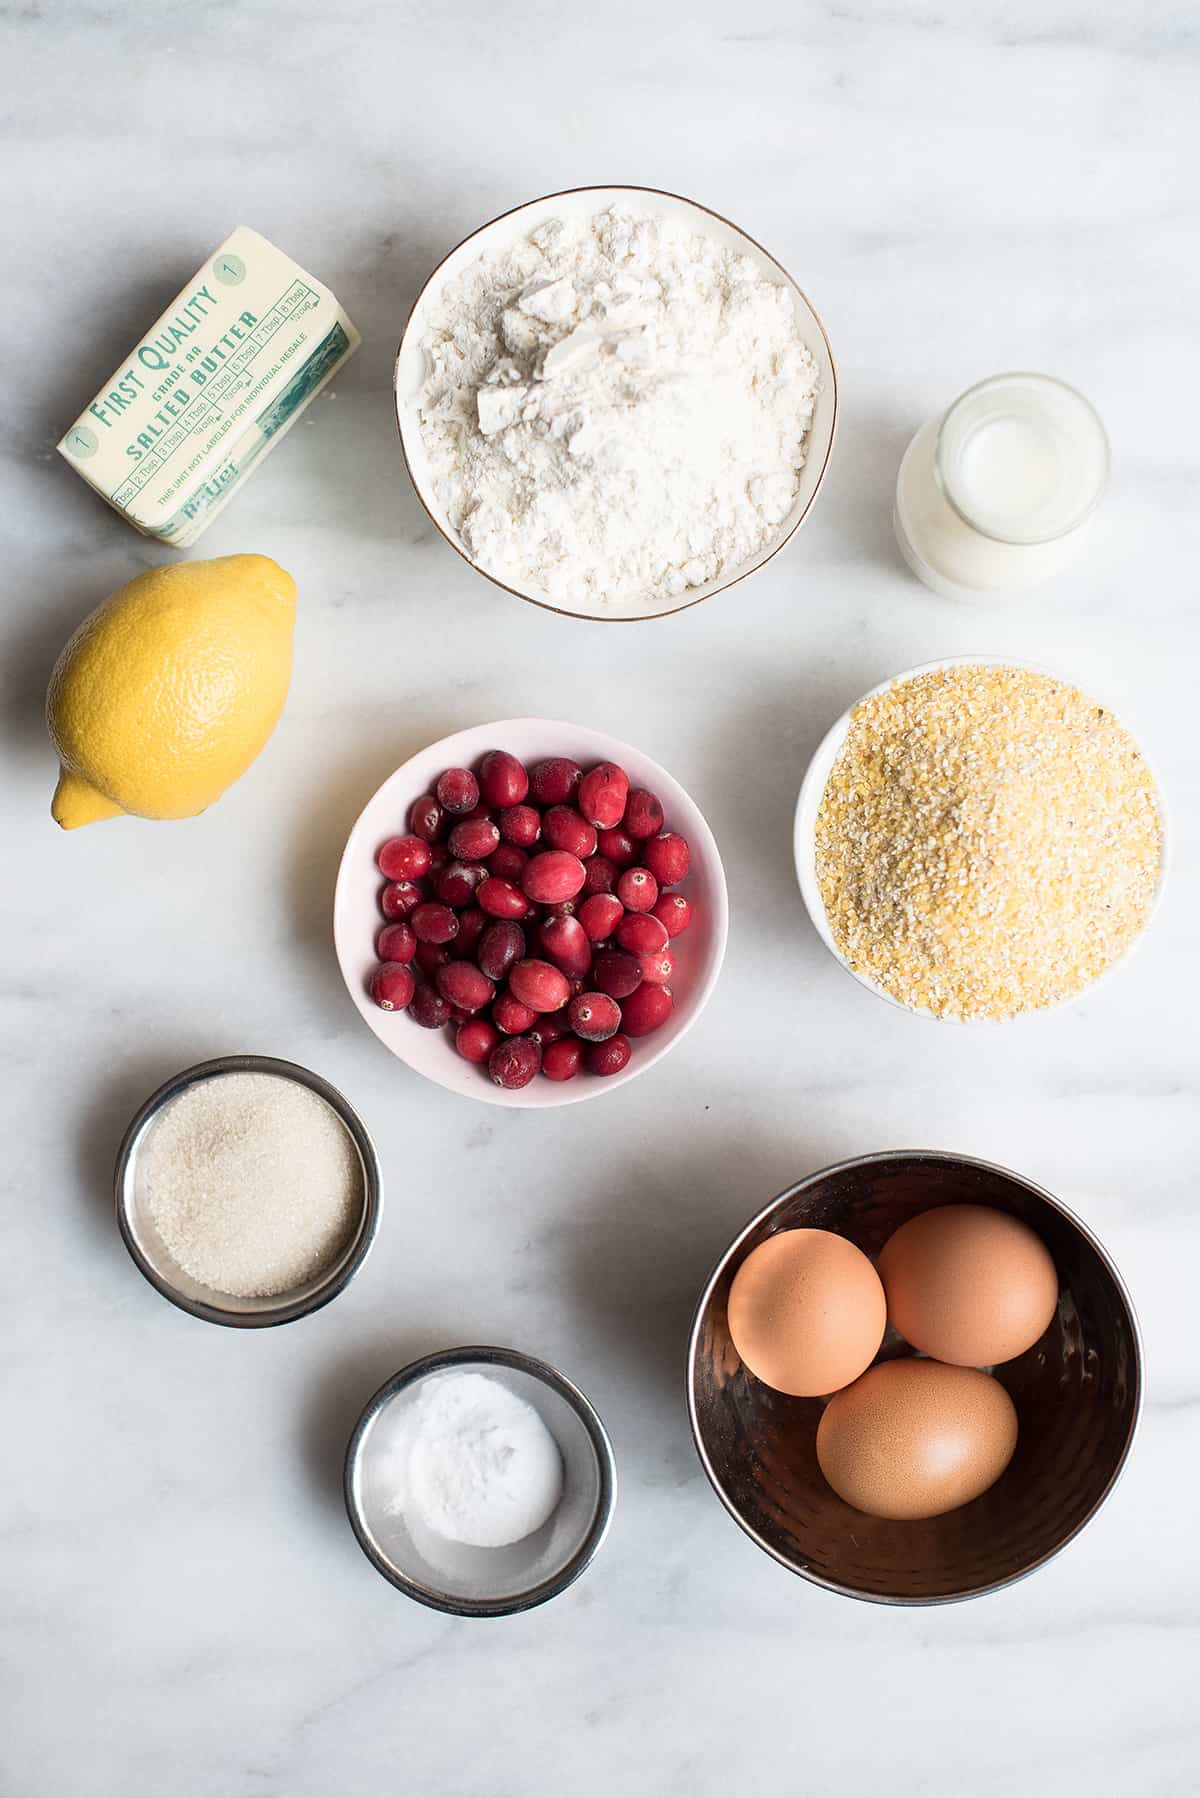 cornmeal griddle cakes with cranberry compote ingredients